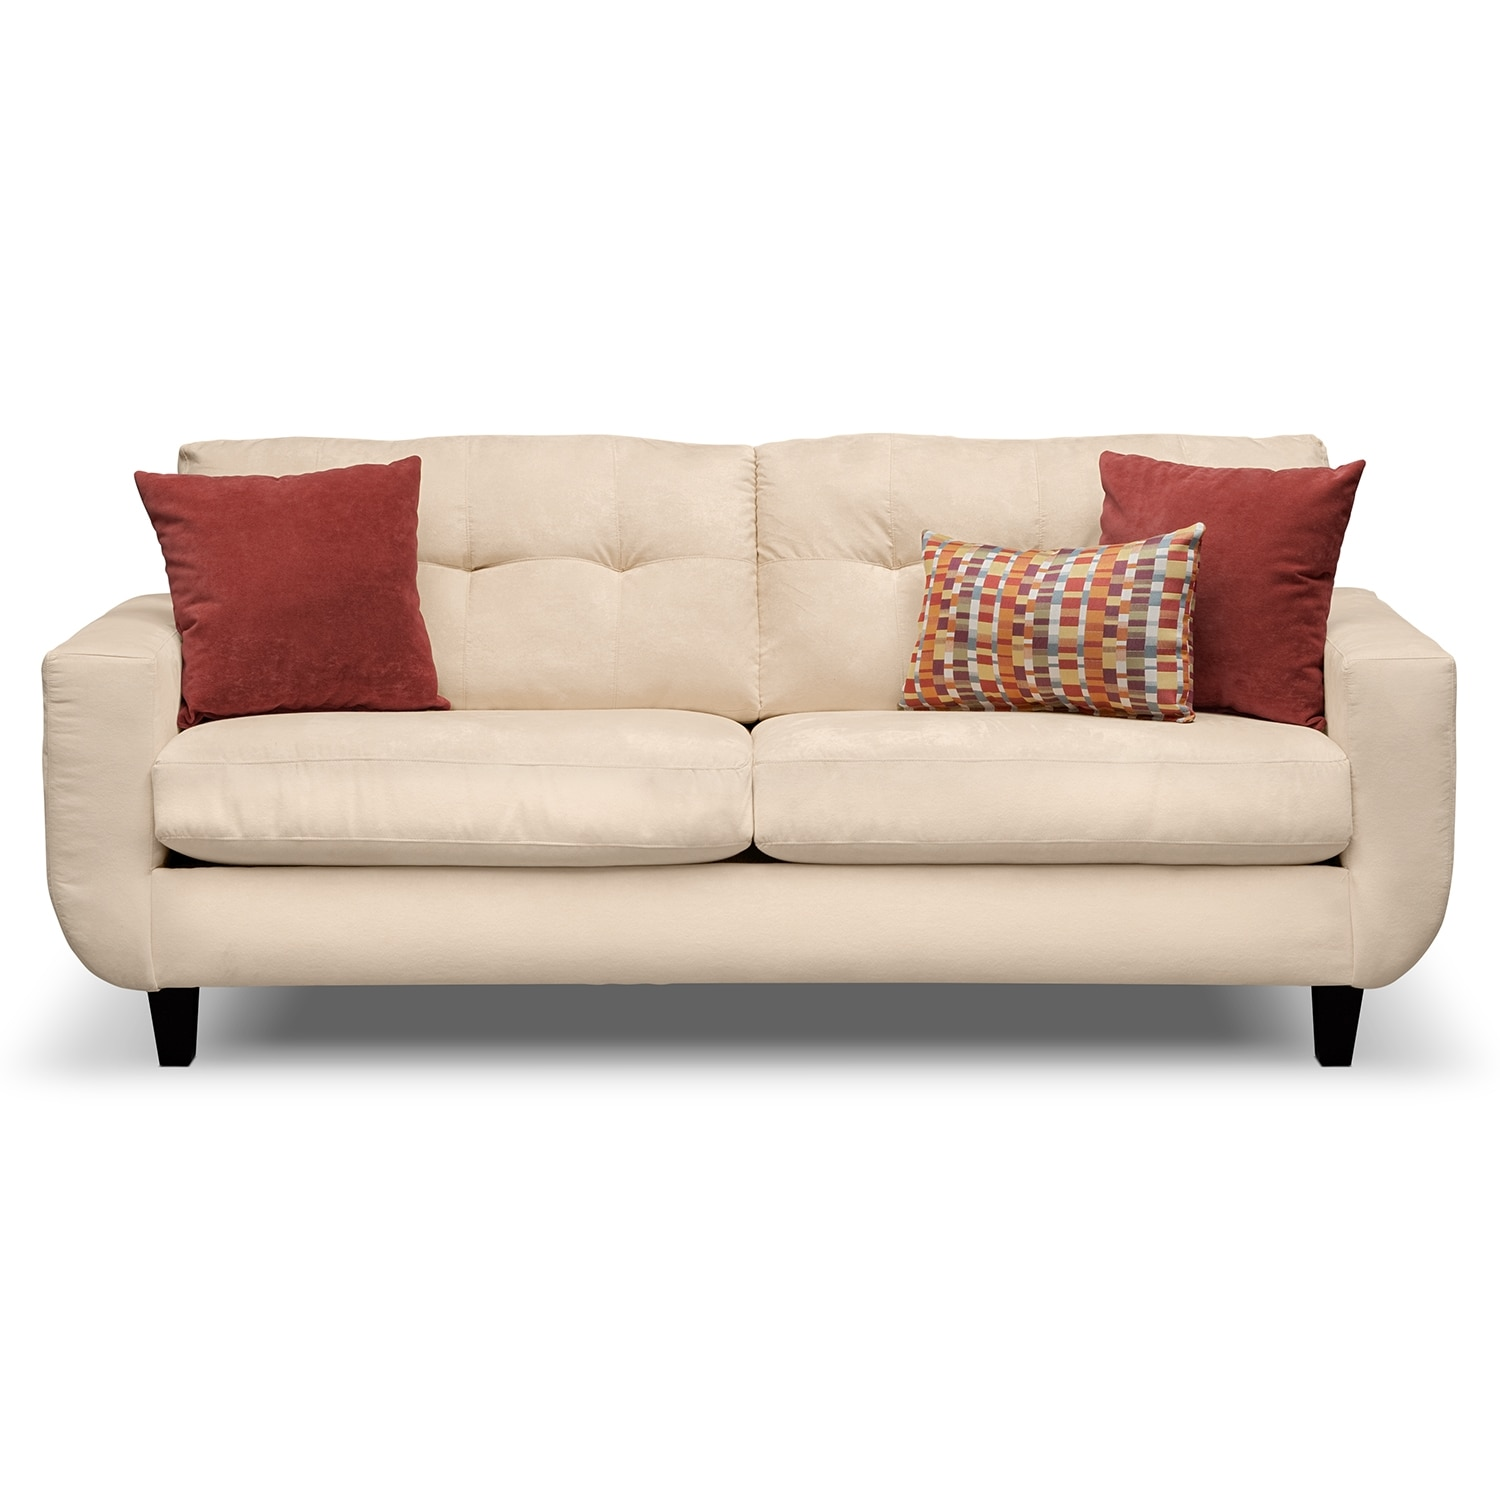 American signature sofas for Signature furniture